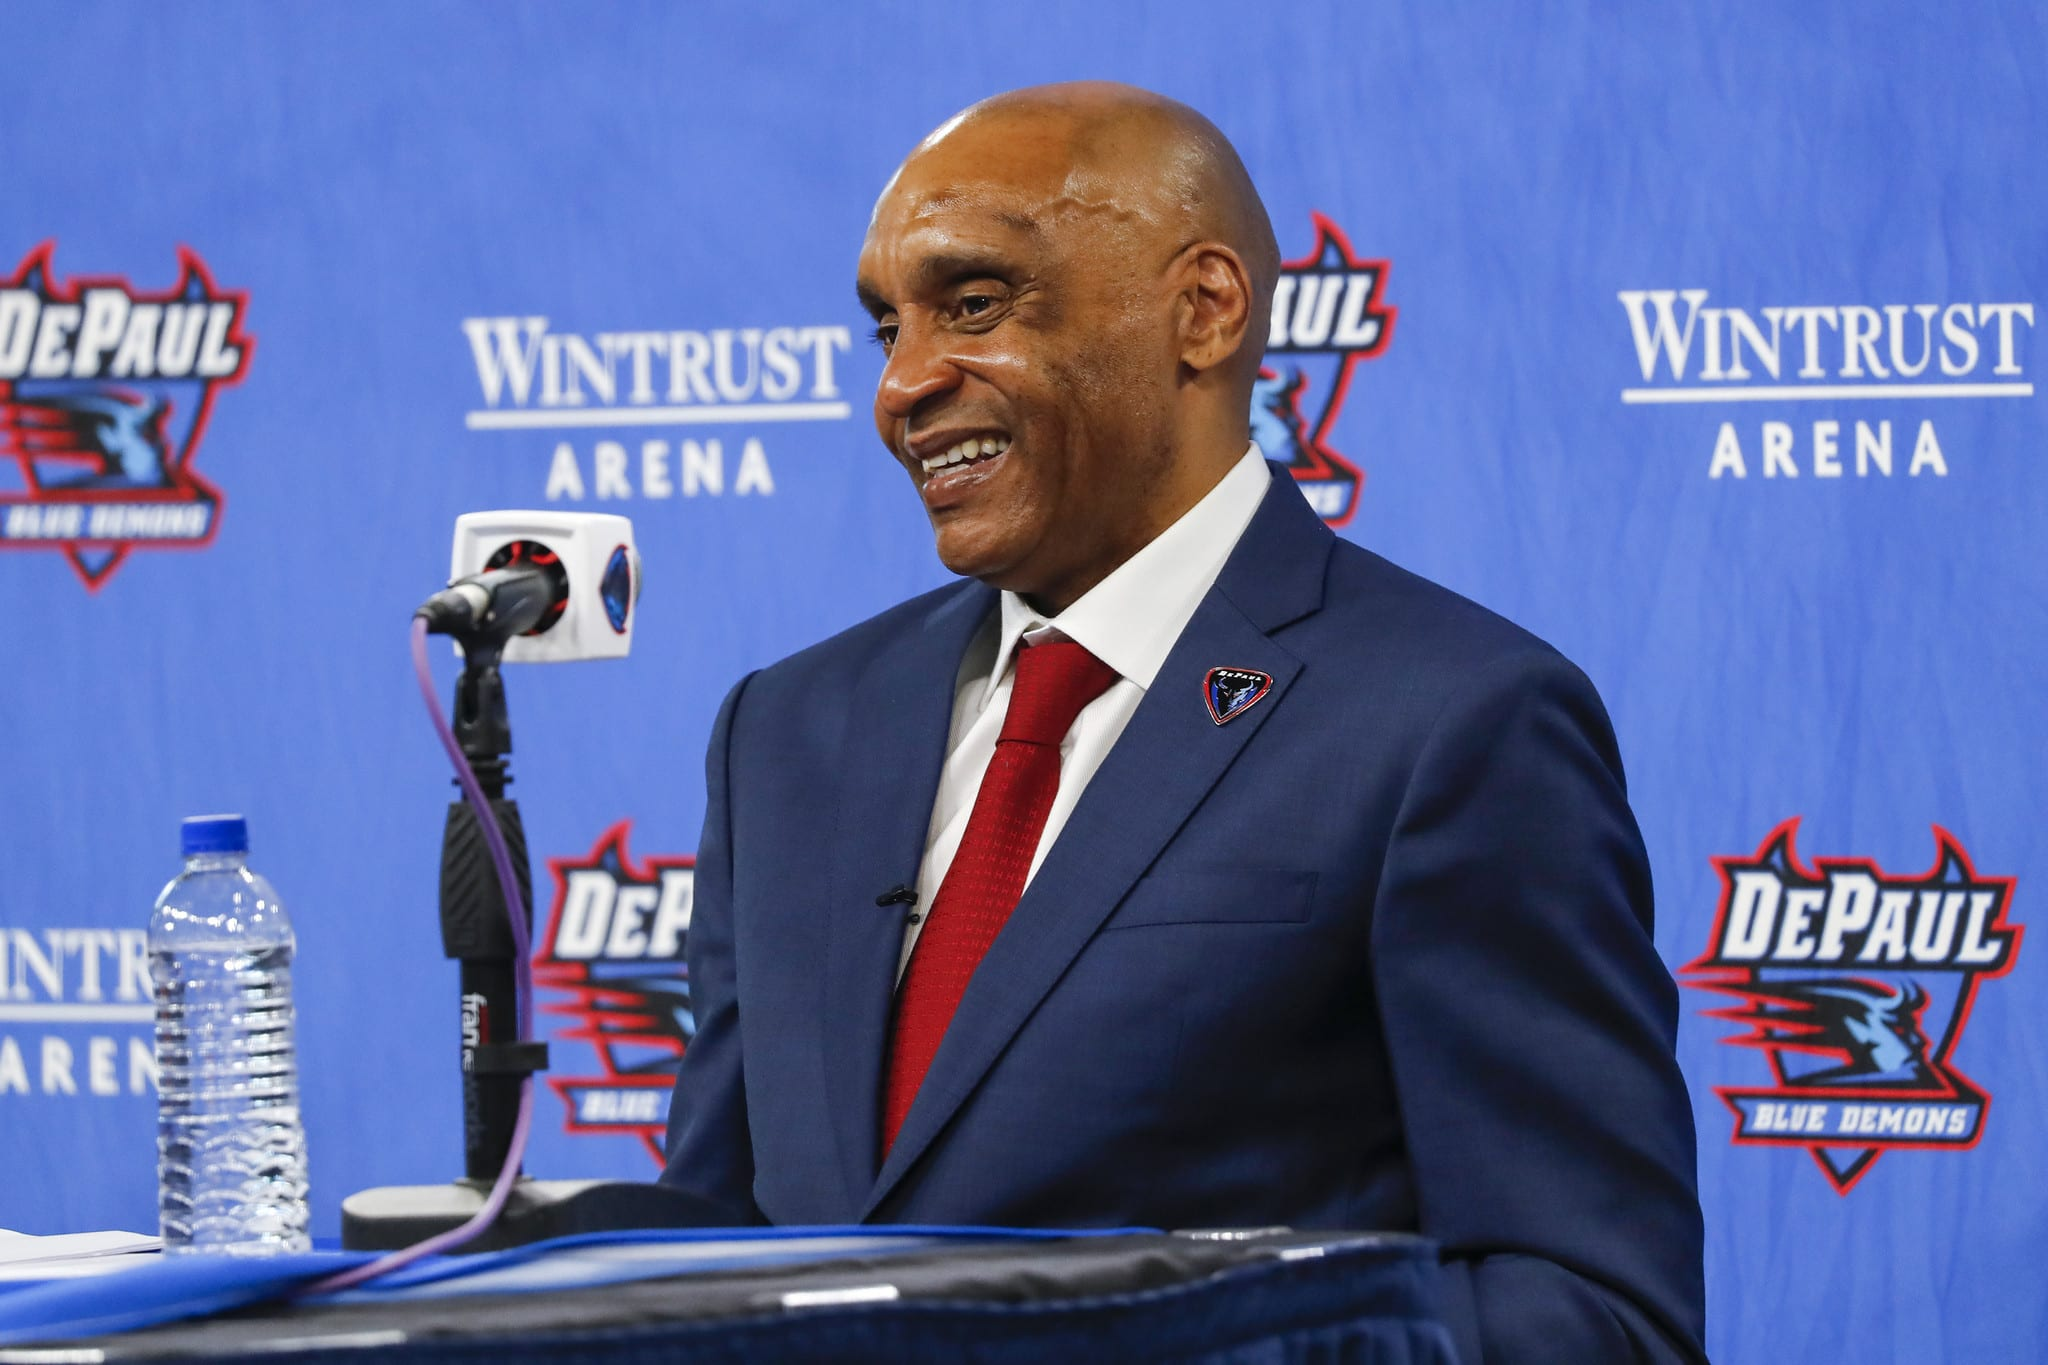 """Tony Stubblefield on Year One at DePaul: """"We want to put a competitive team on the floor"""" - College Hoops Today"""